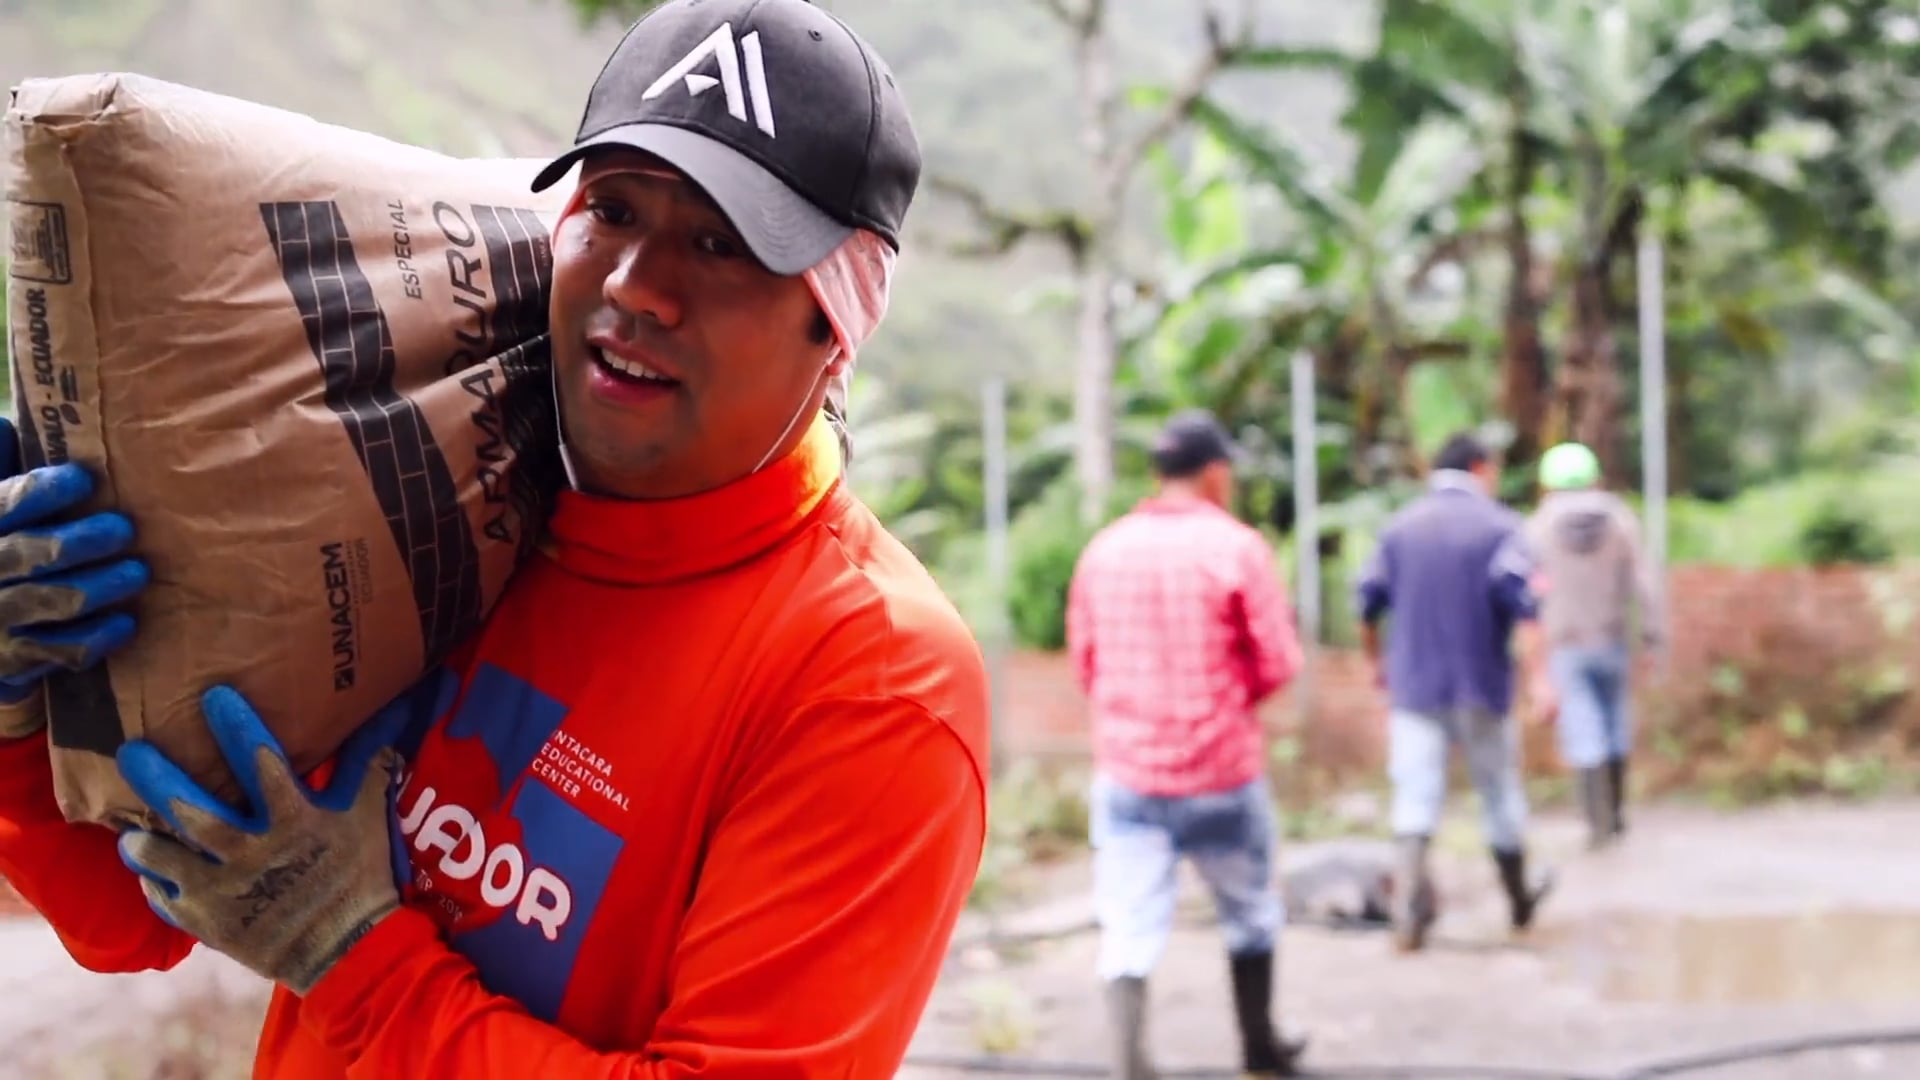 Passion - Academy Employees Use VTO to Give Service in Ecuador